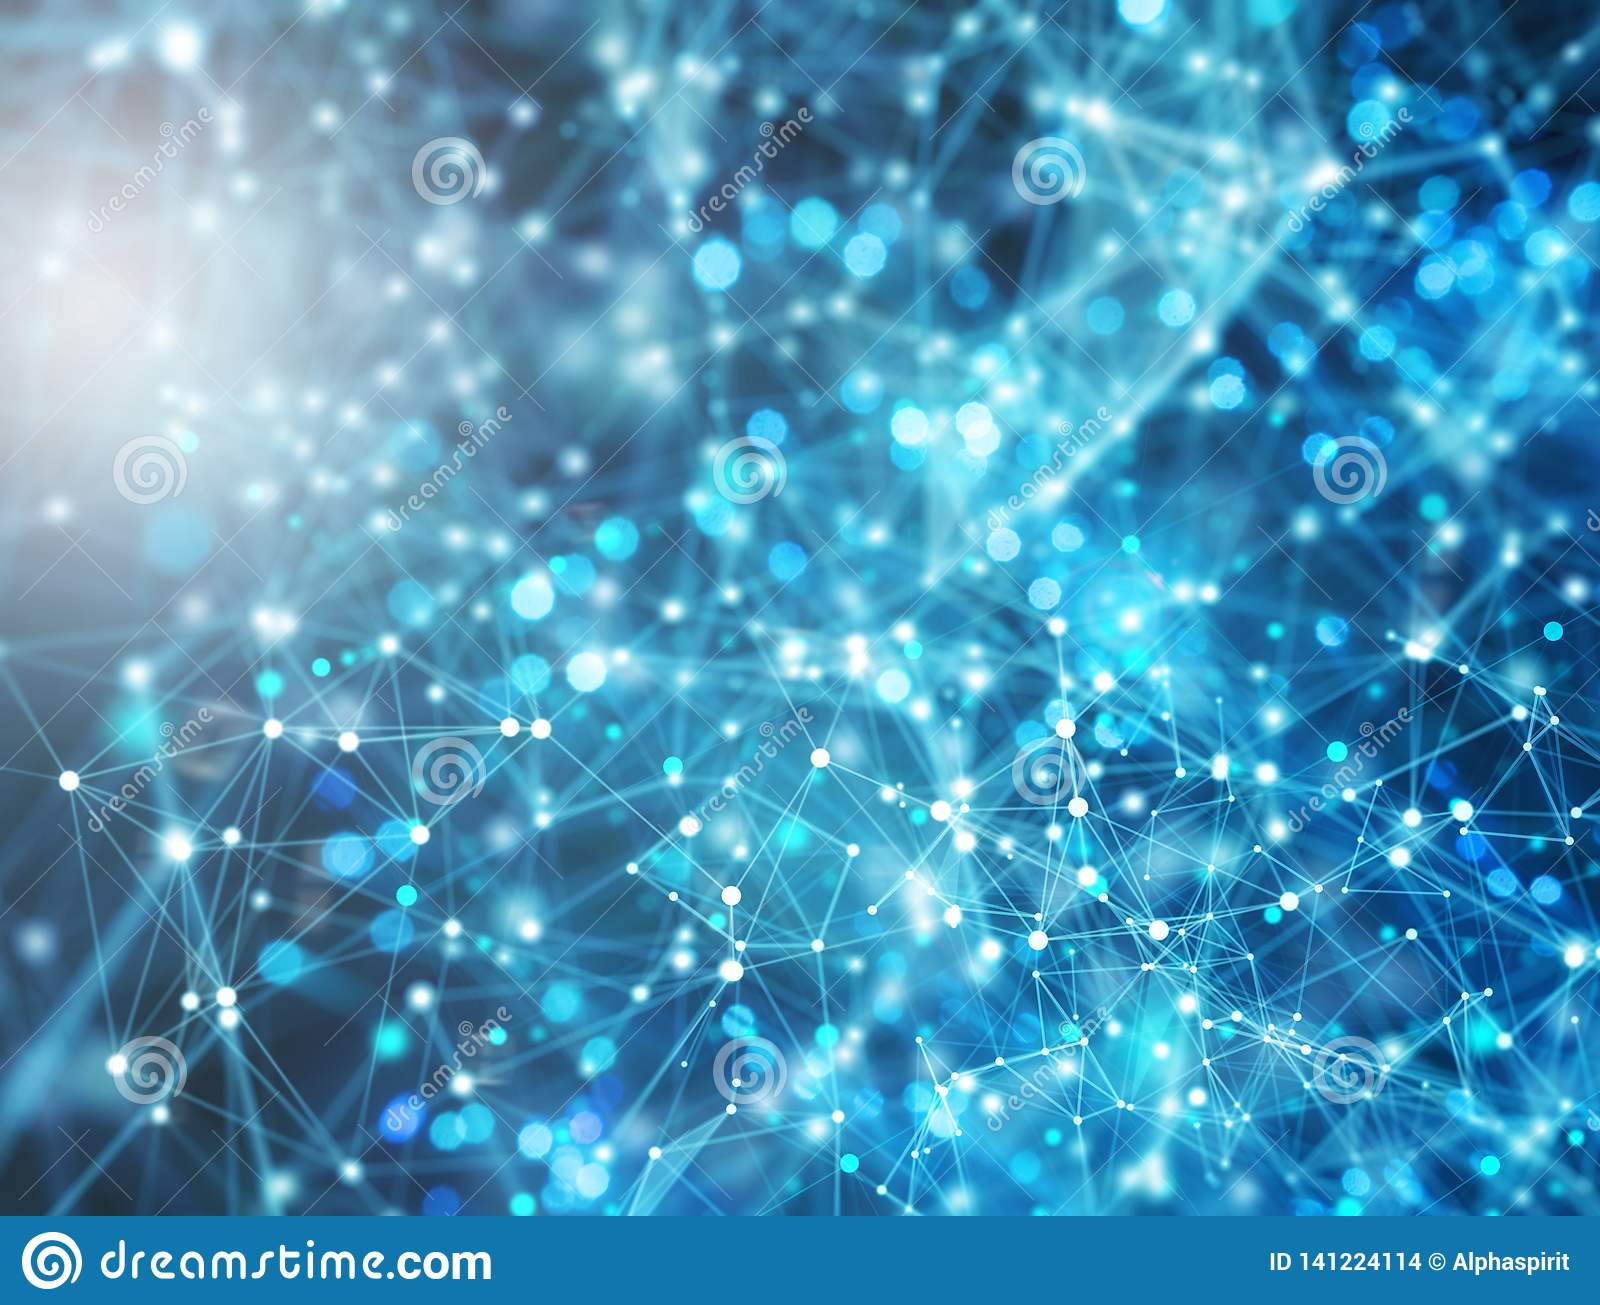 Futuristic abstract internet network background with motion effects